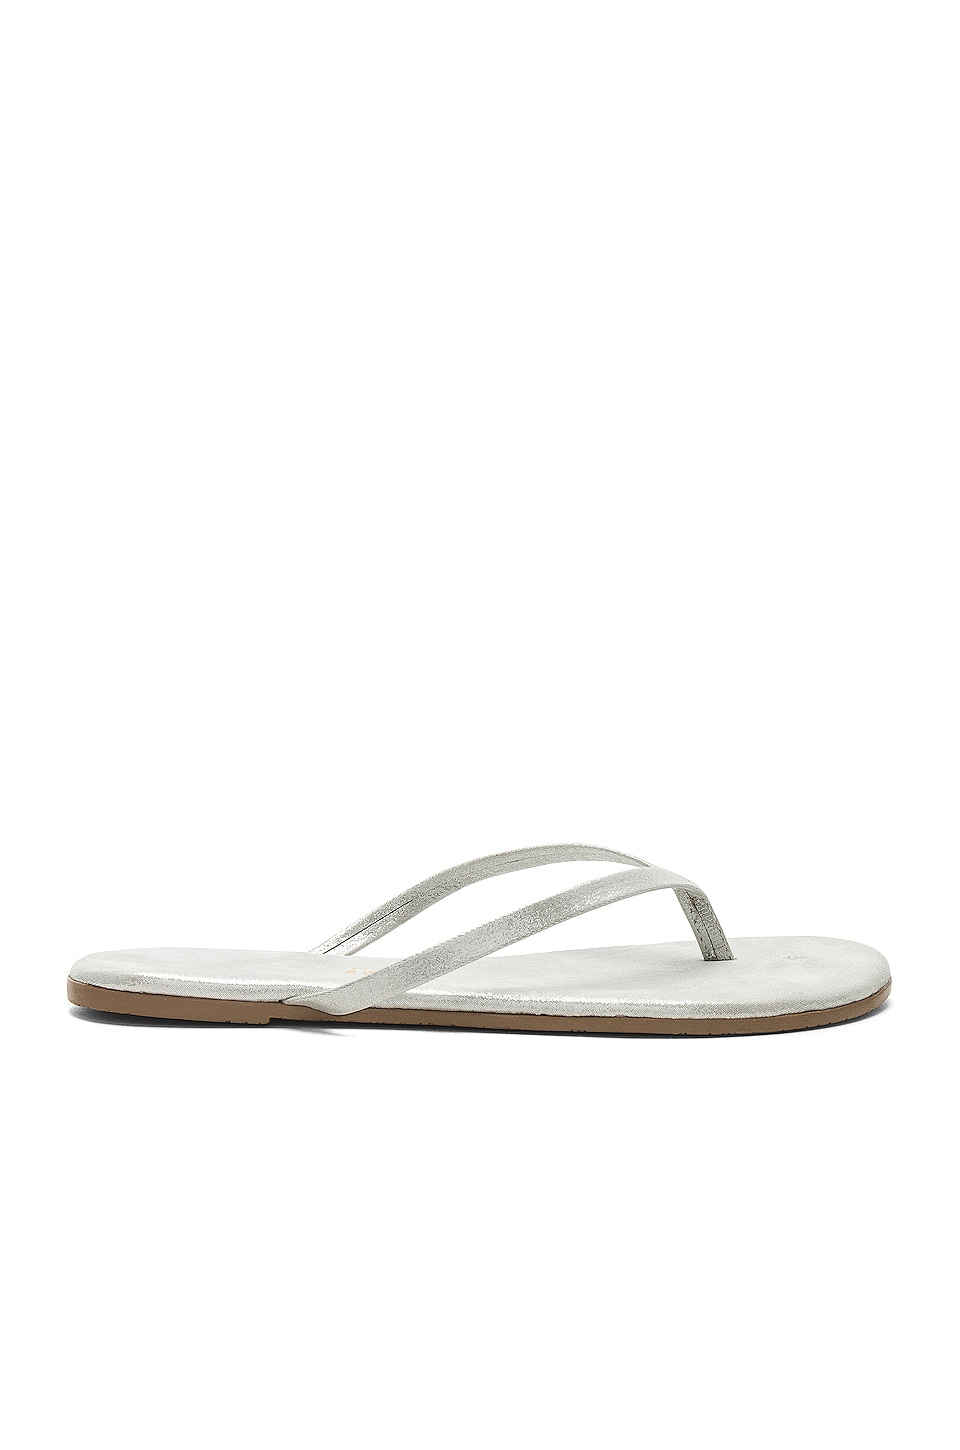 TKEES Sandal in Gleam